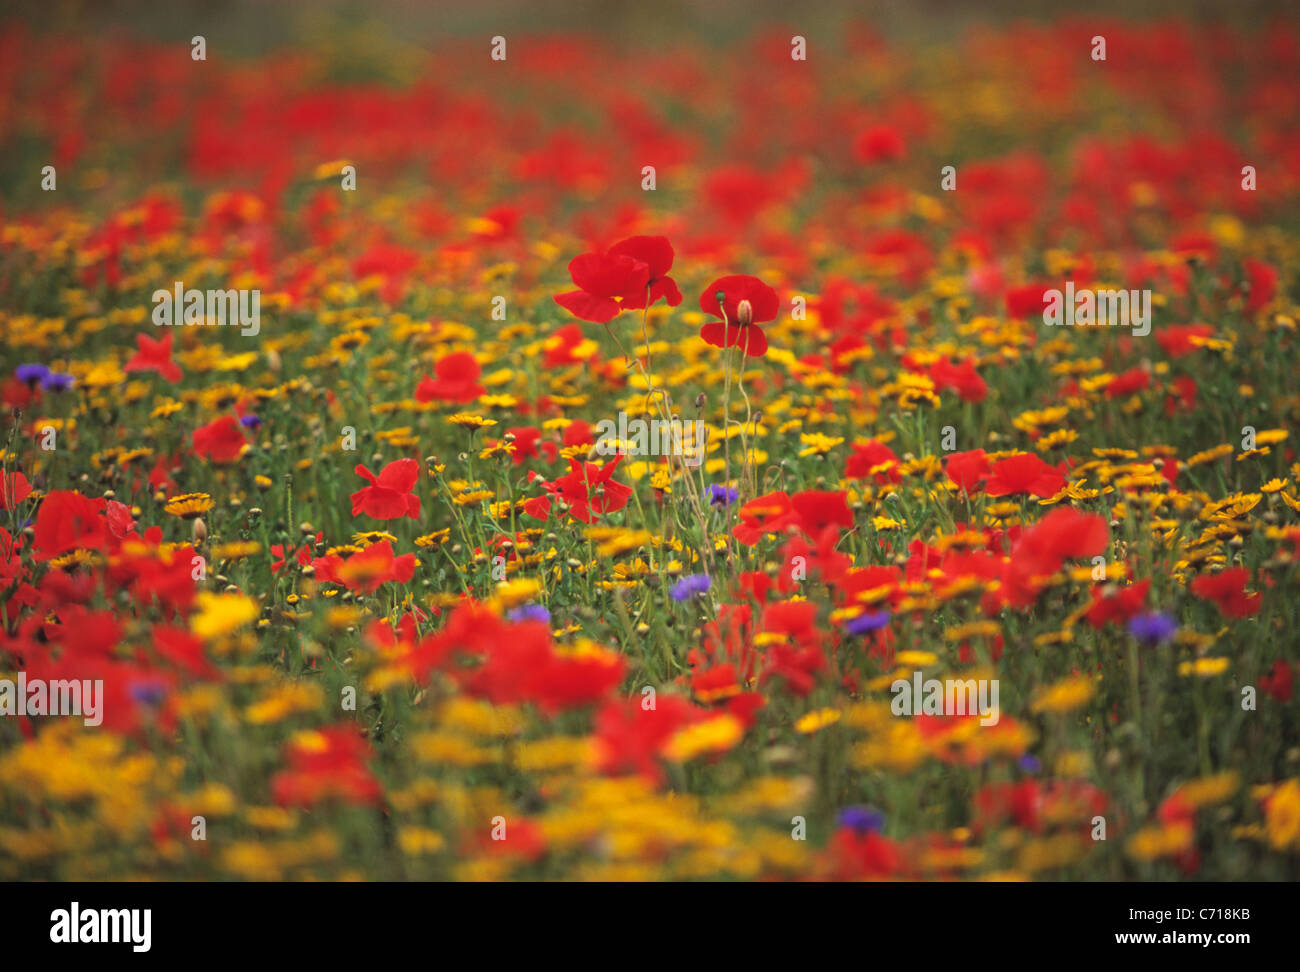 Papaver rhoeas, Poppy field, Mixed colours wild flowers subject - Stock Image